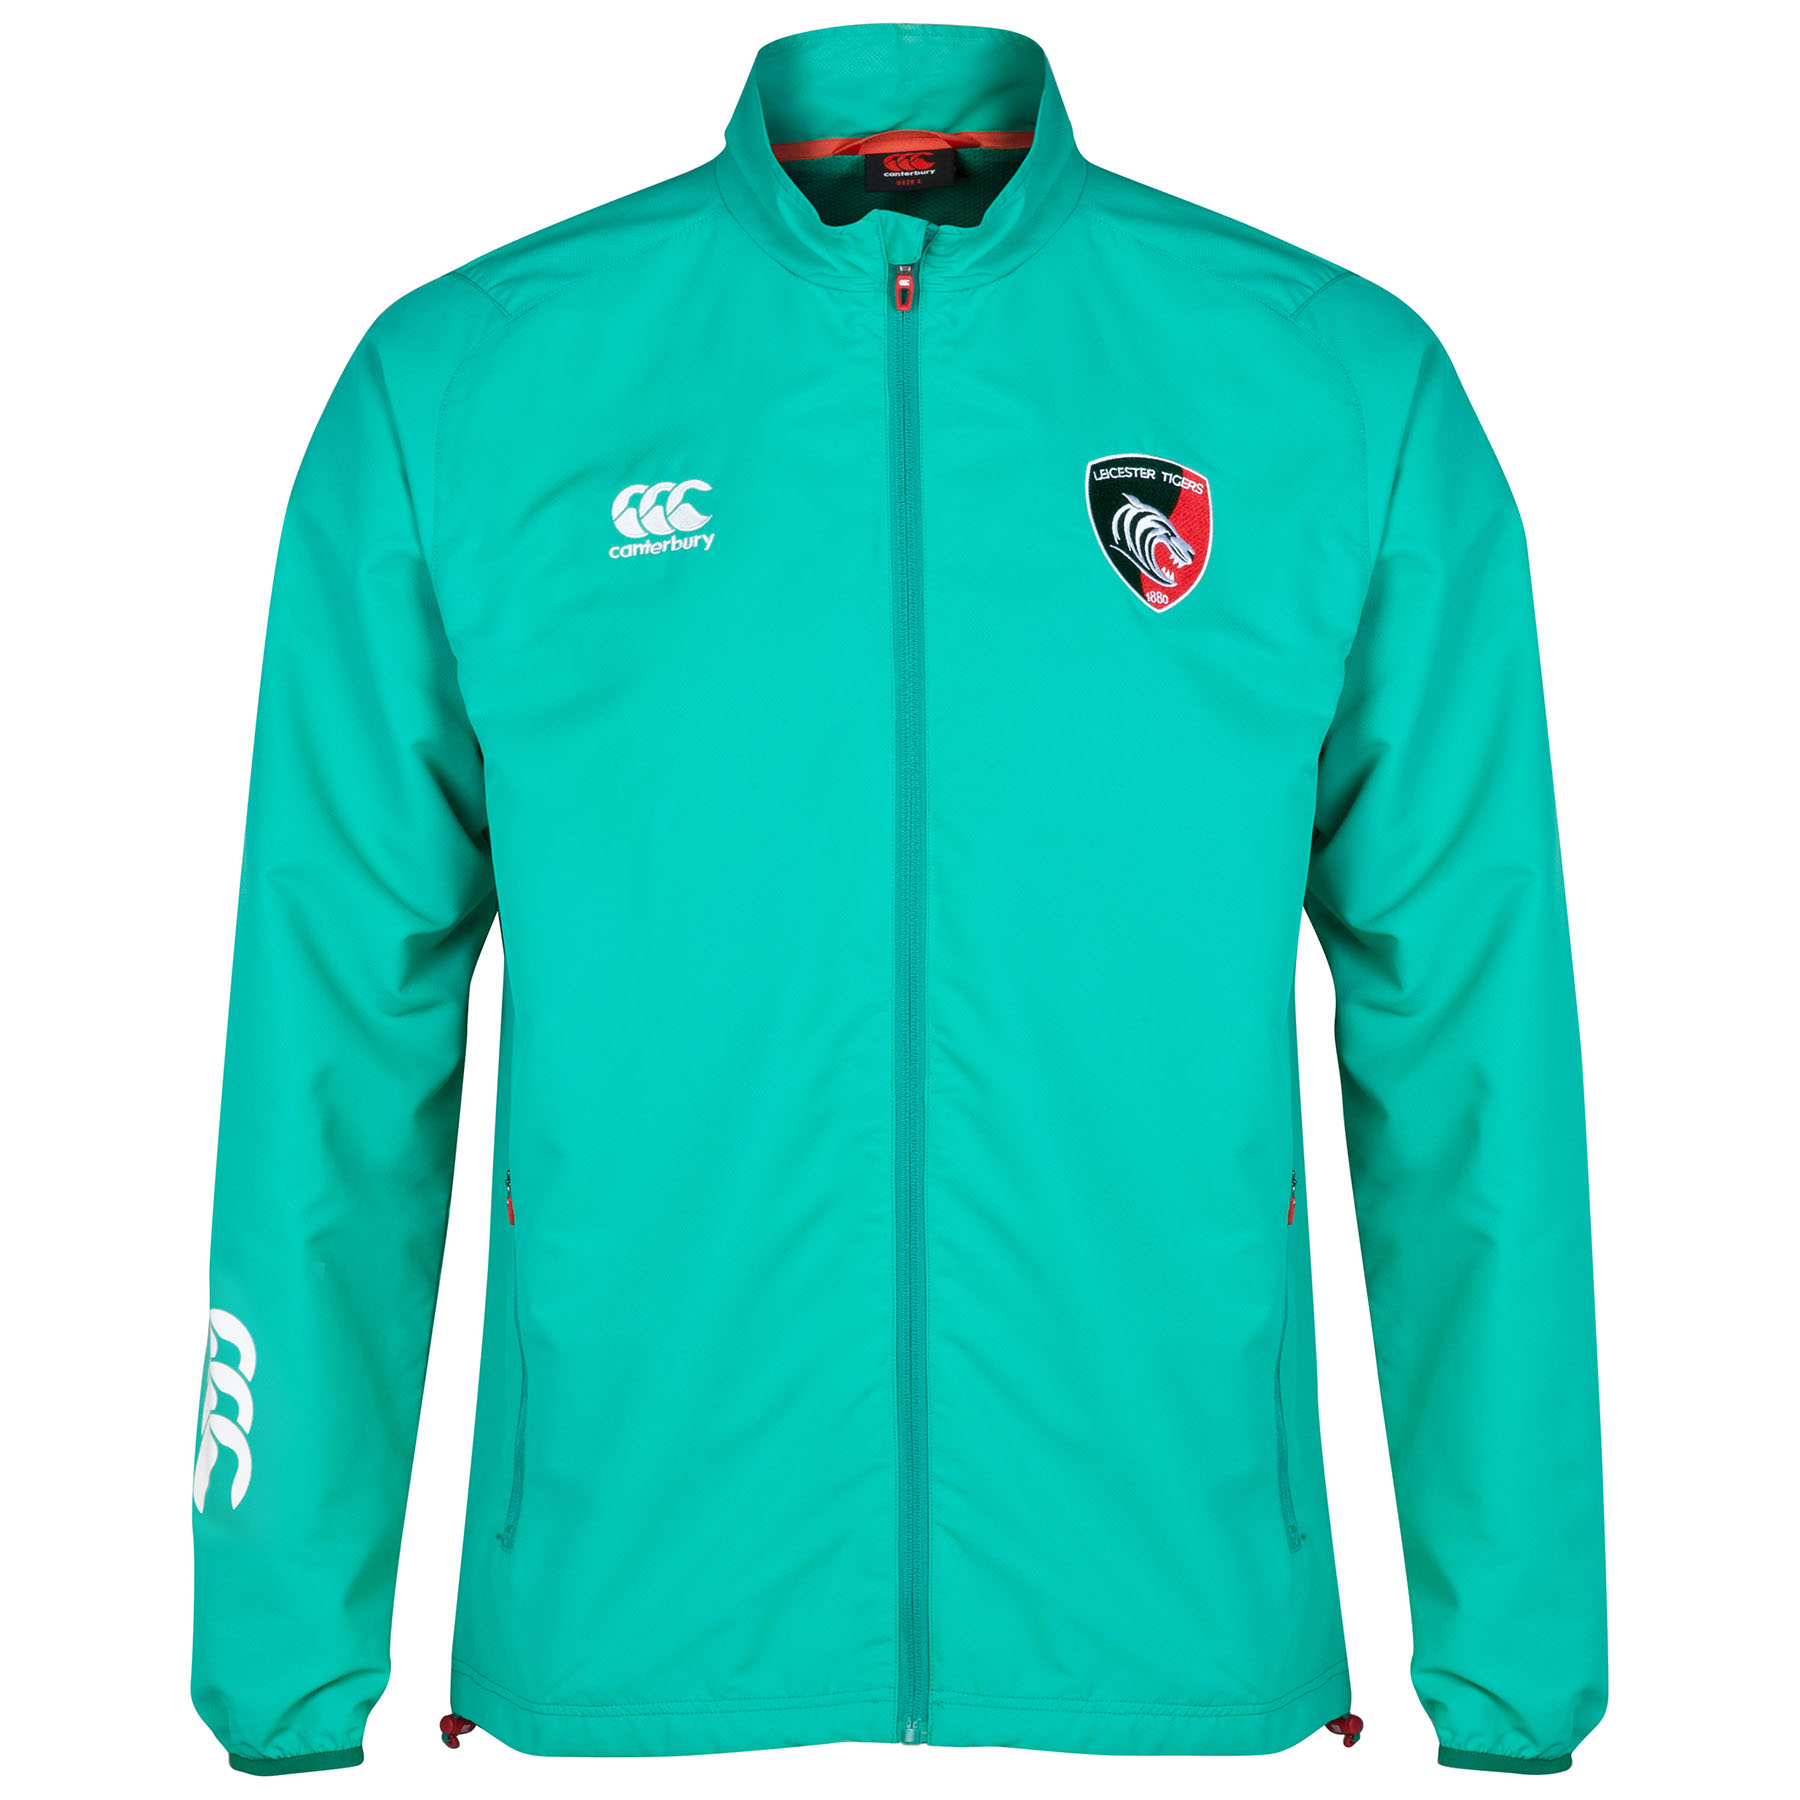 Leicester Tigers Presentation Jacket Dk Green